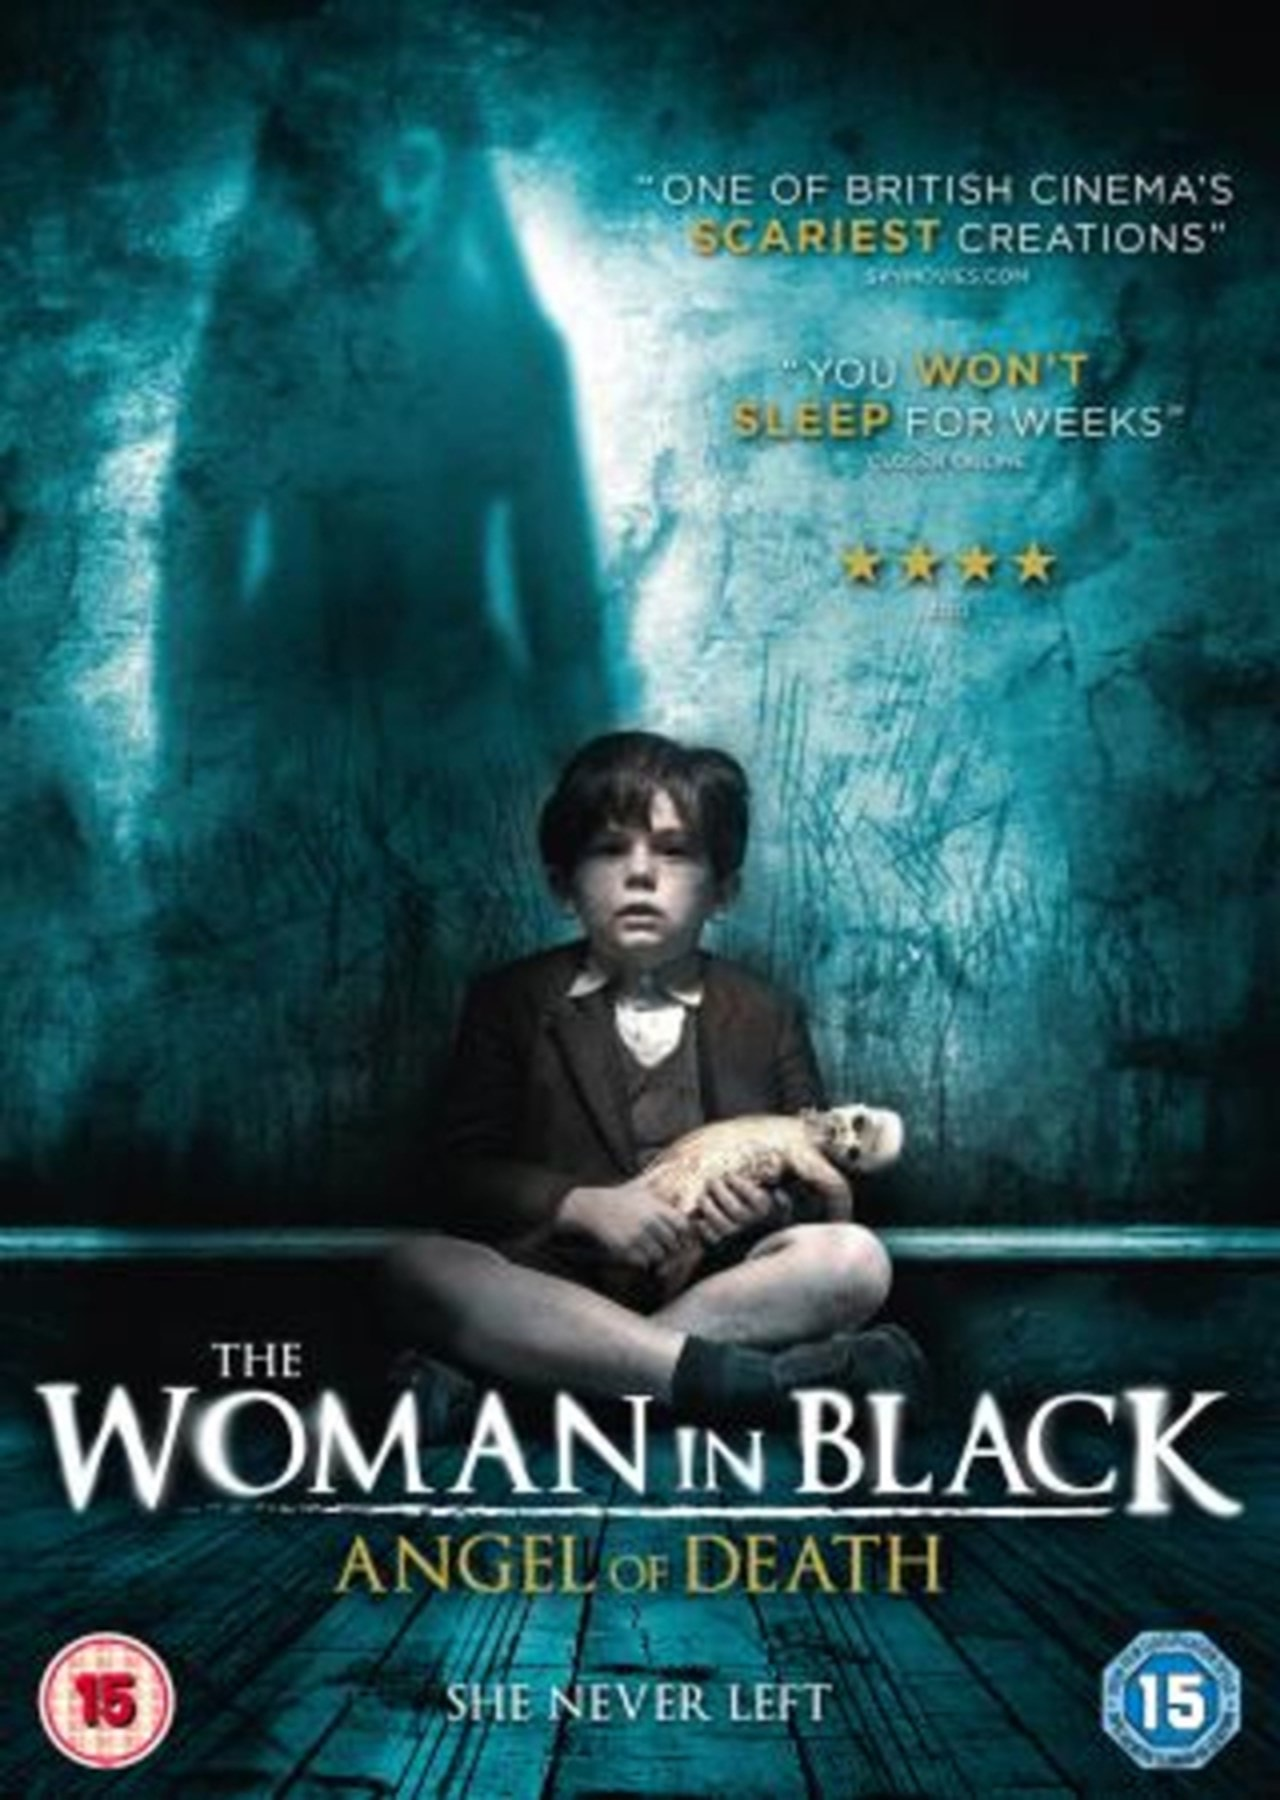 The Woman in Black: Angel of Death - 1